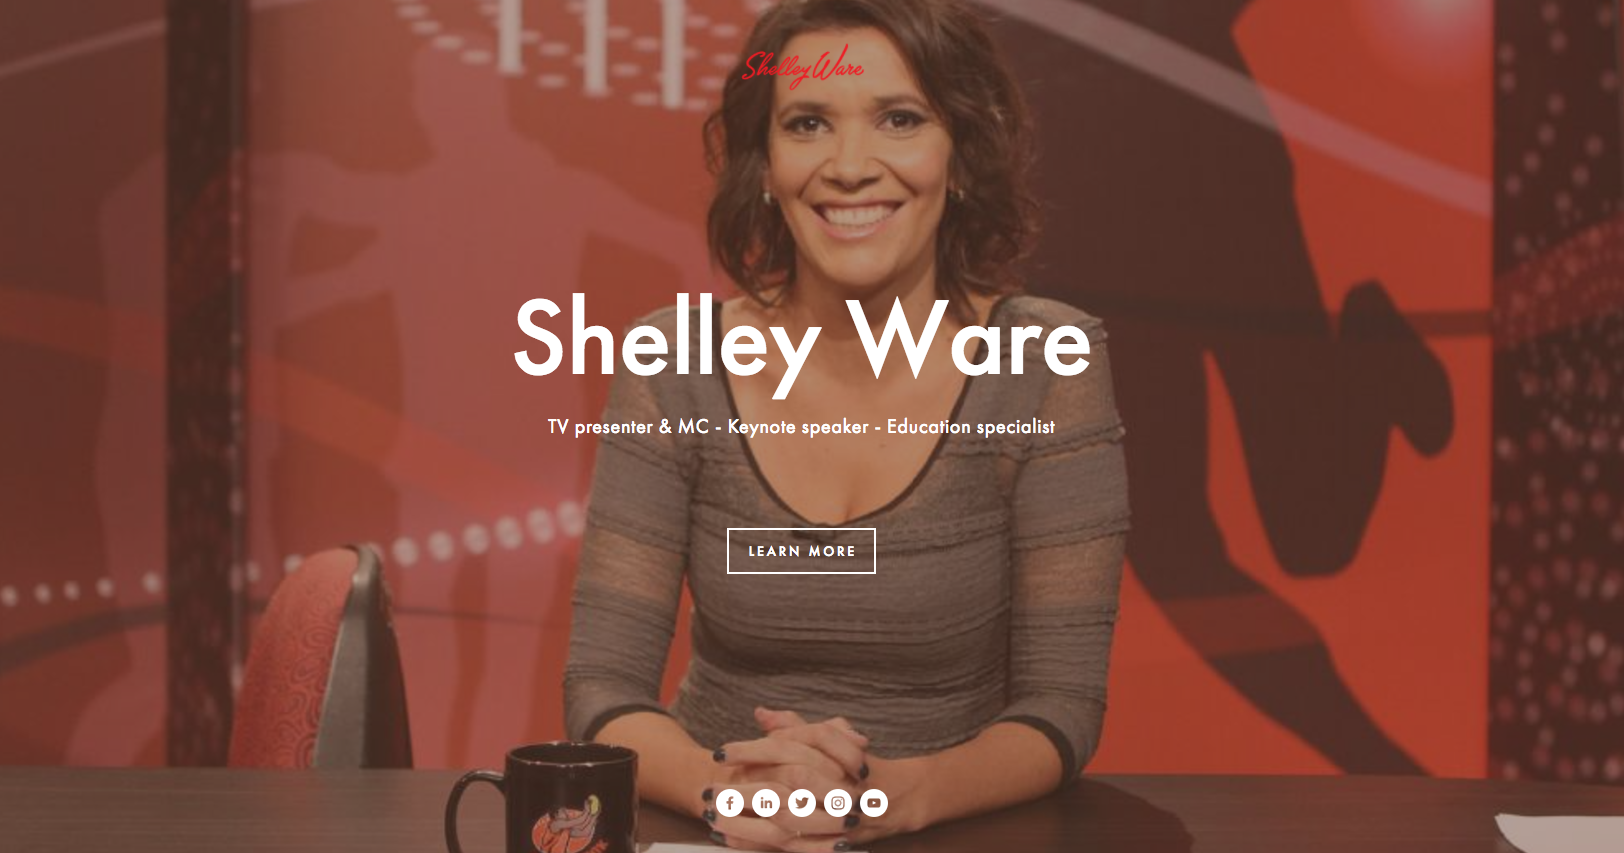 Shelley Ware website by Social Star